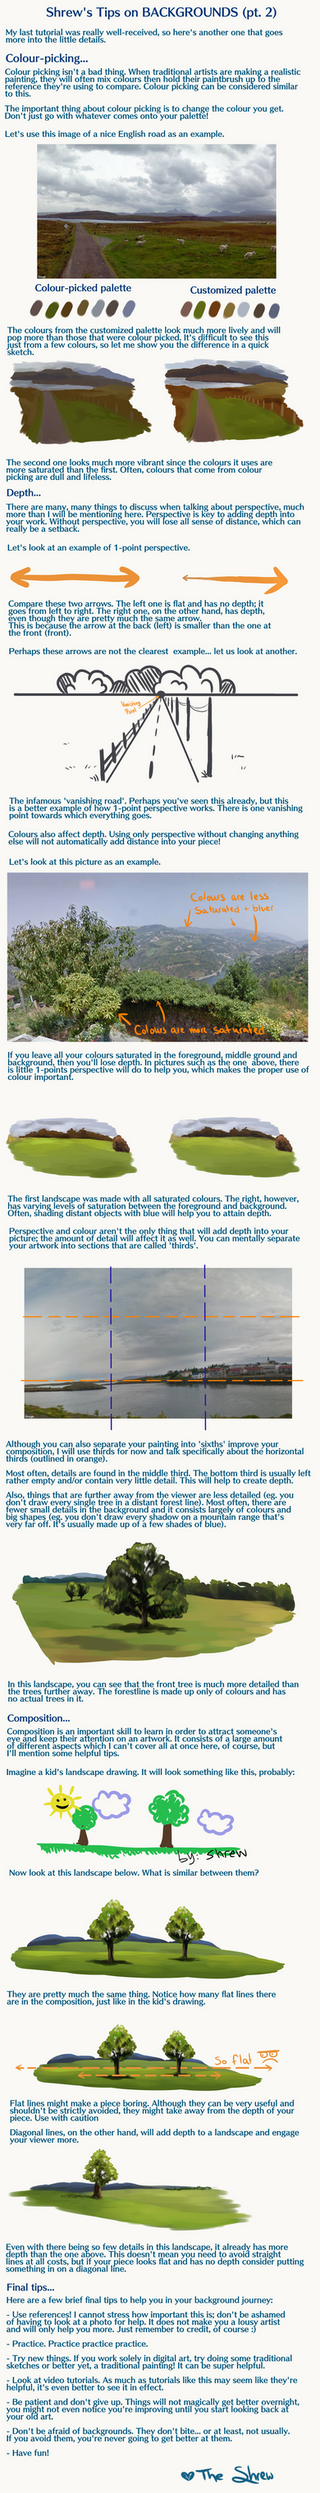 The Shrew's Tips on Backgrounds - pt. 2